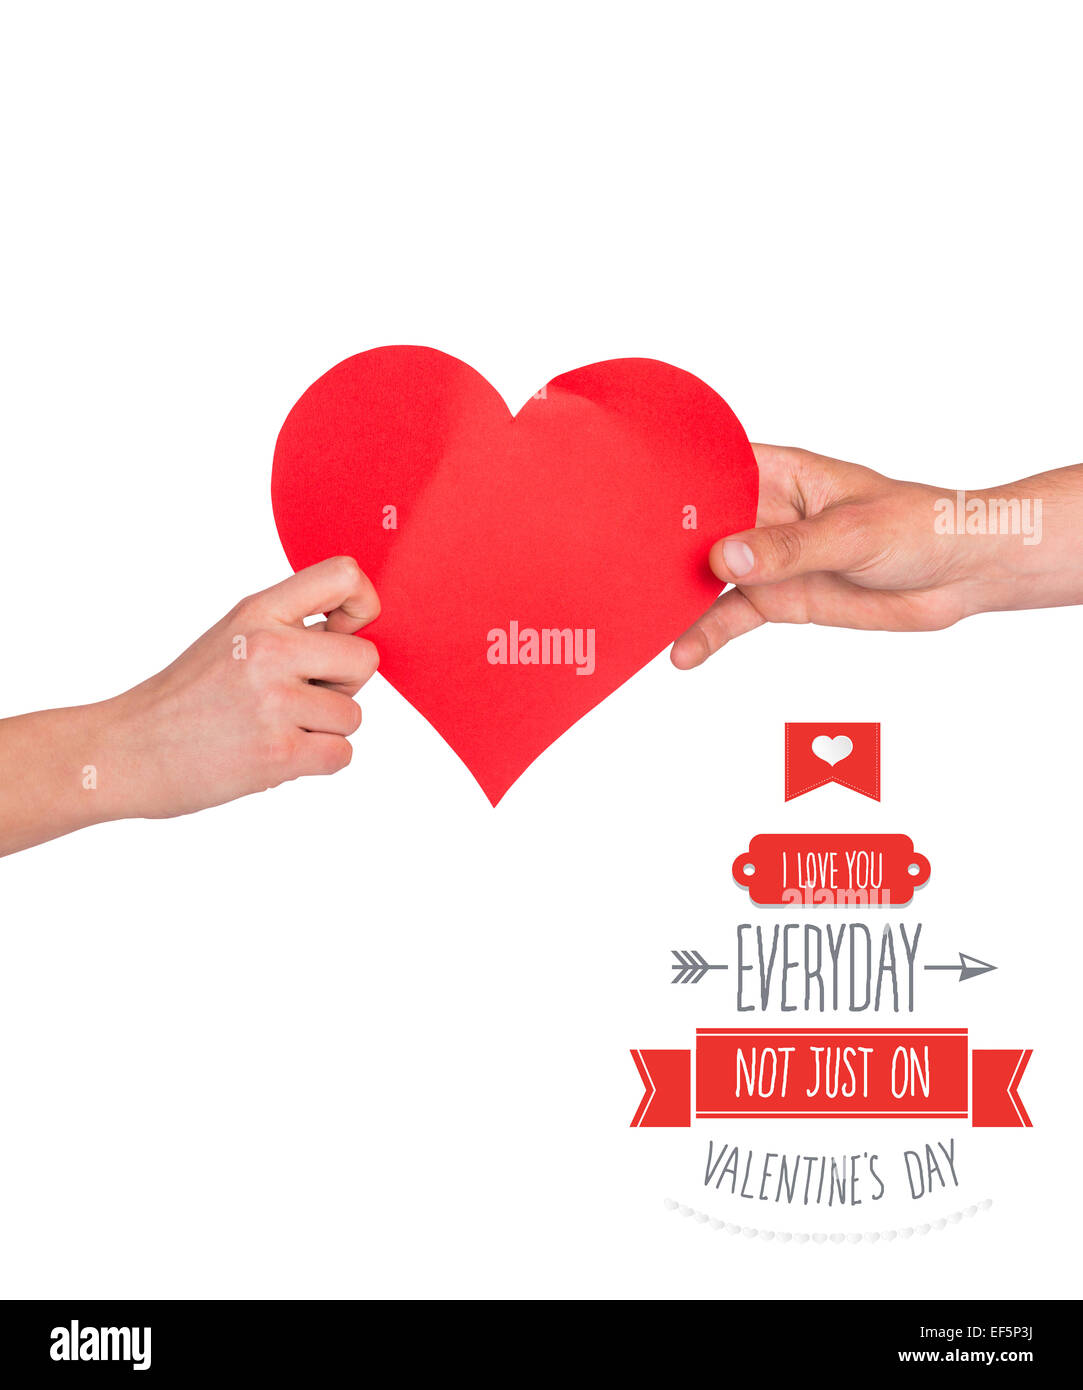 Composite image of hands holding red heart - Stock Image